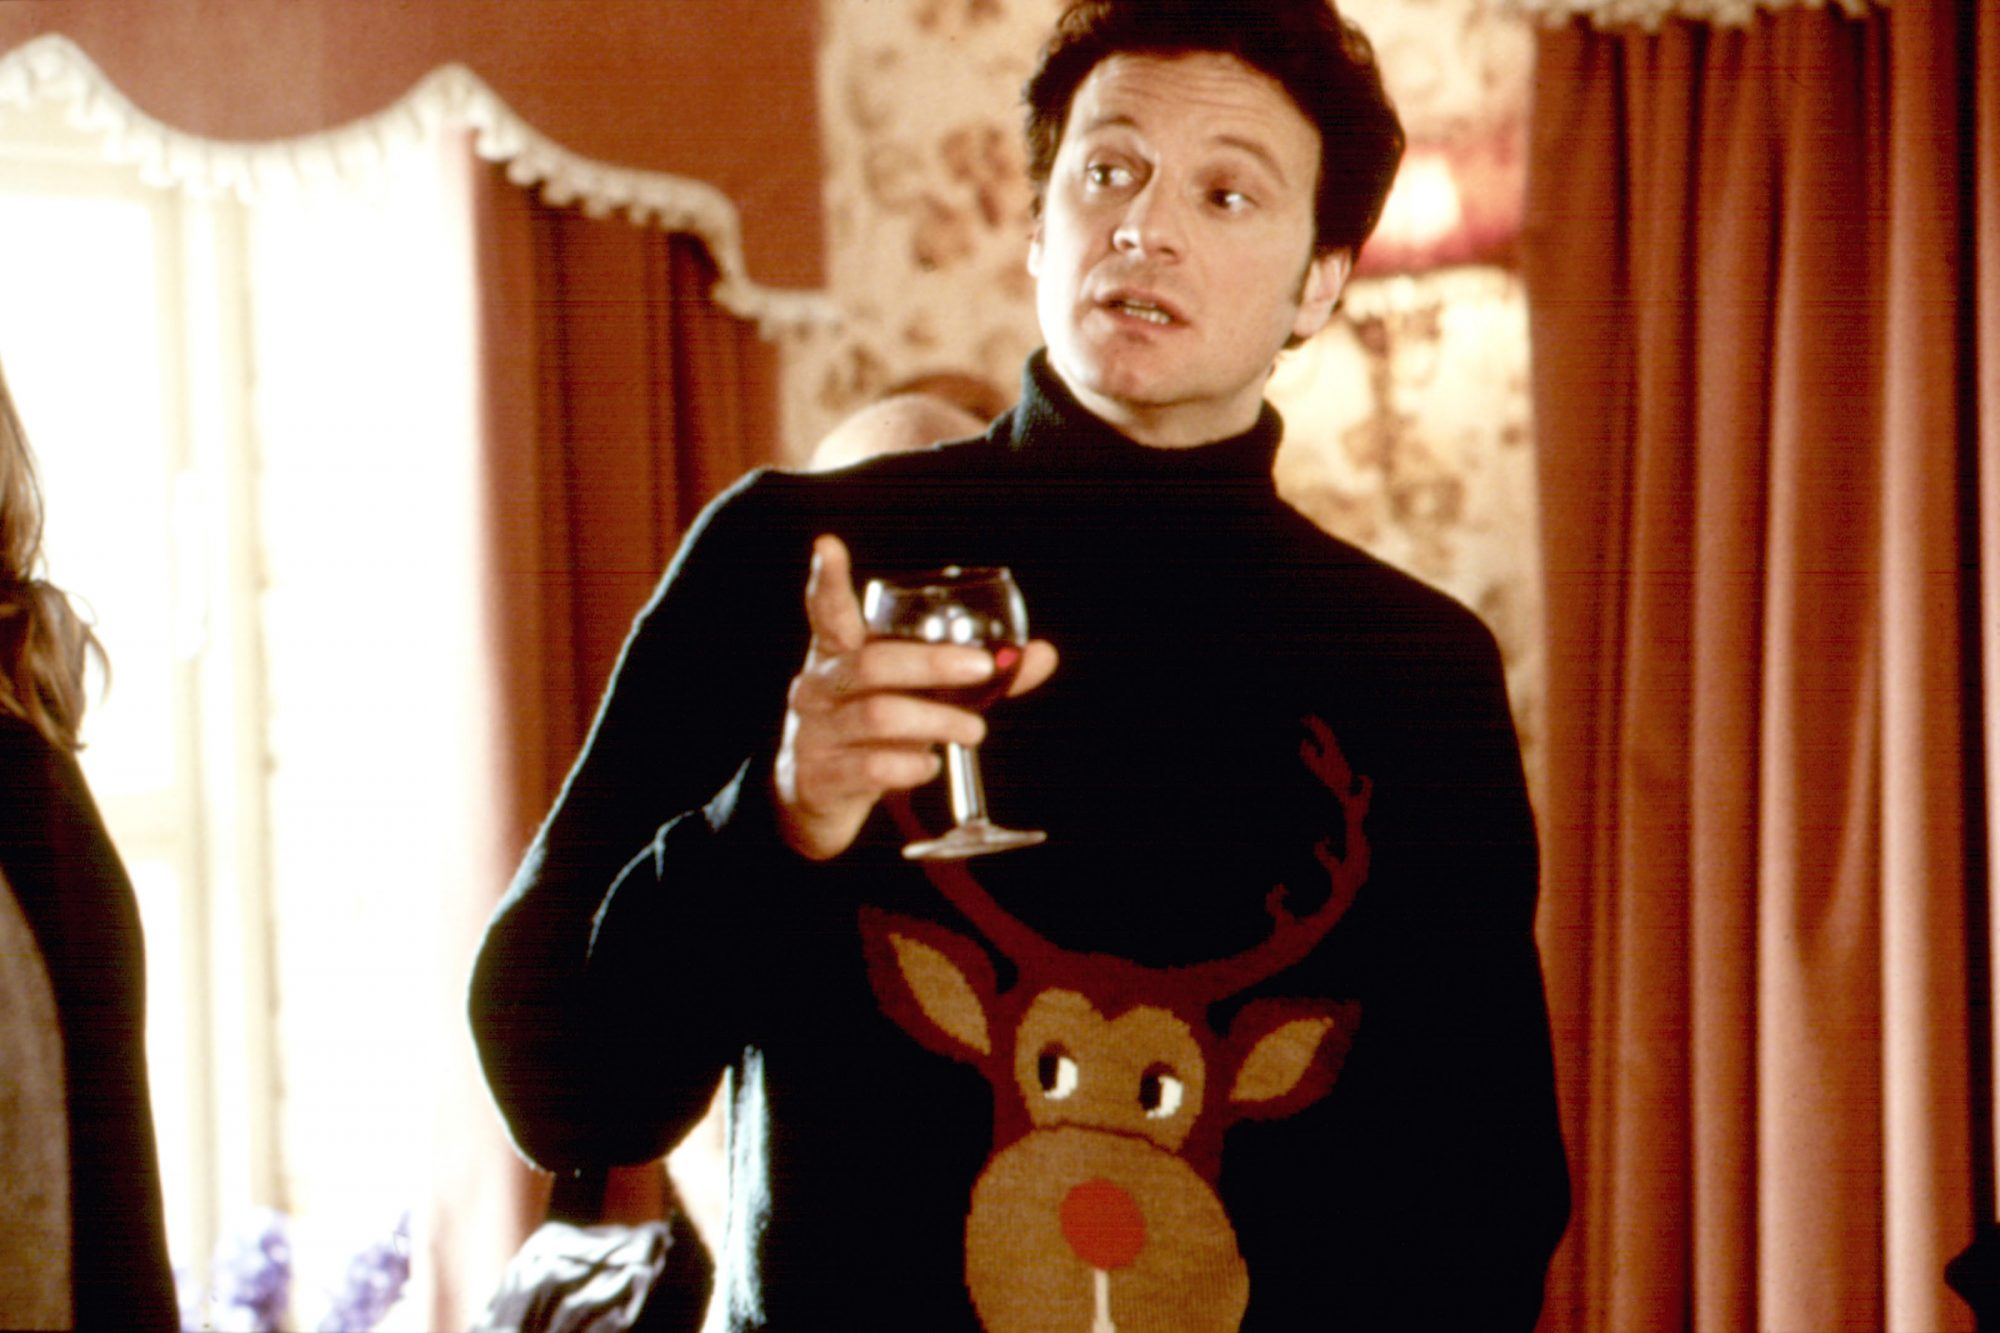 This Ugly Christmas Sweater in Bridget Jones's Diary